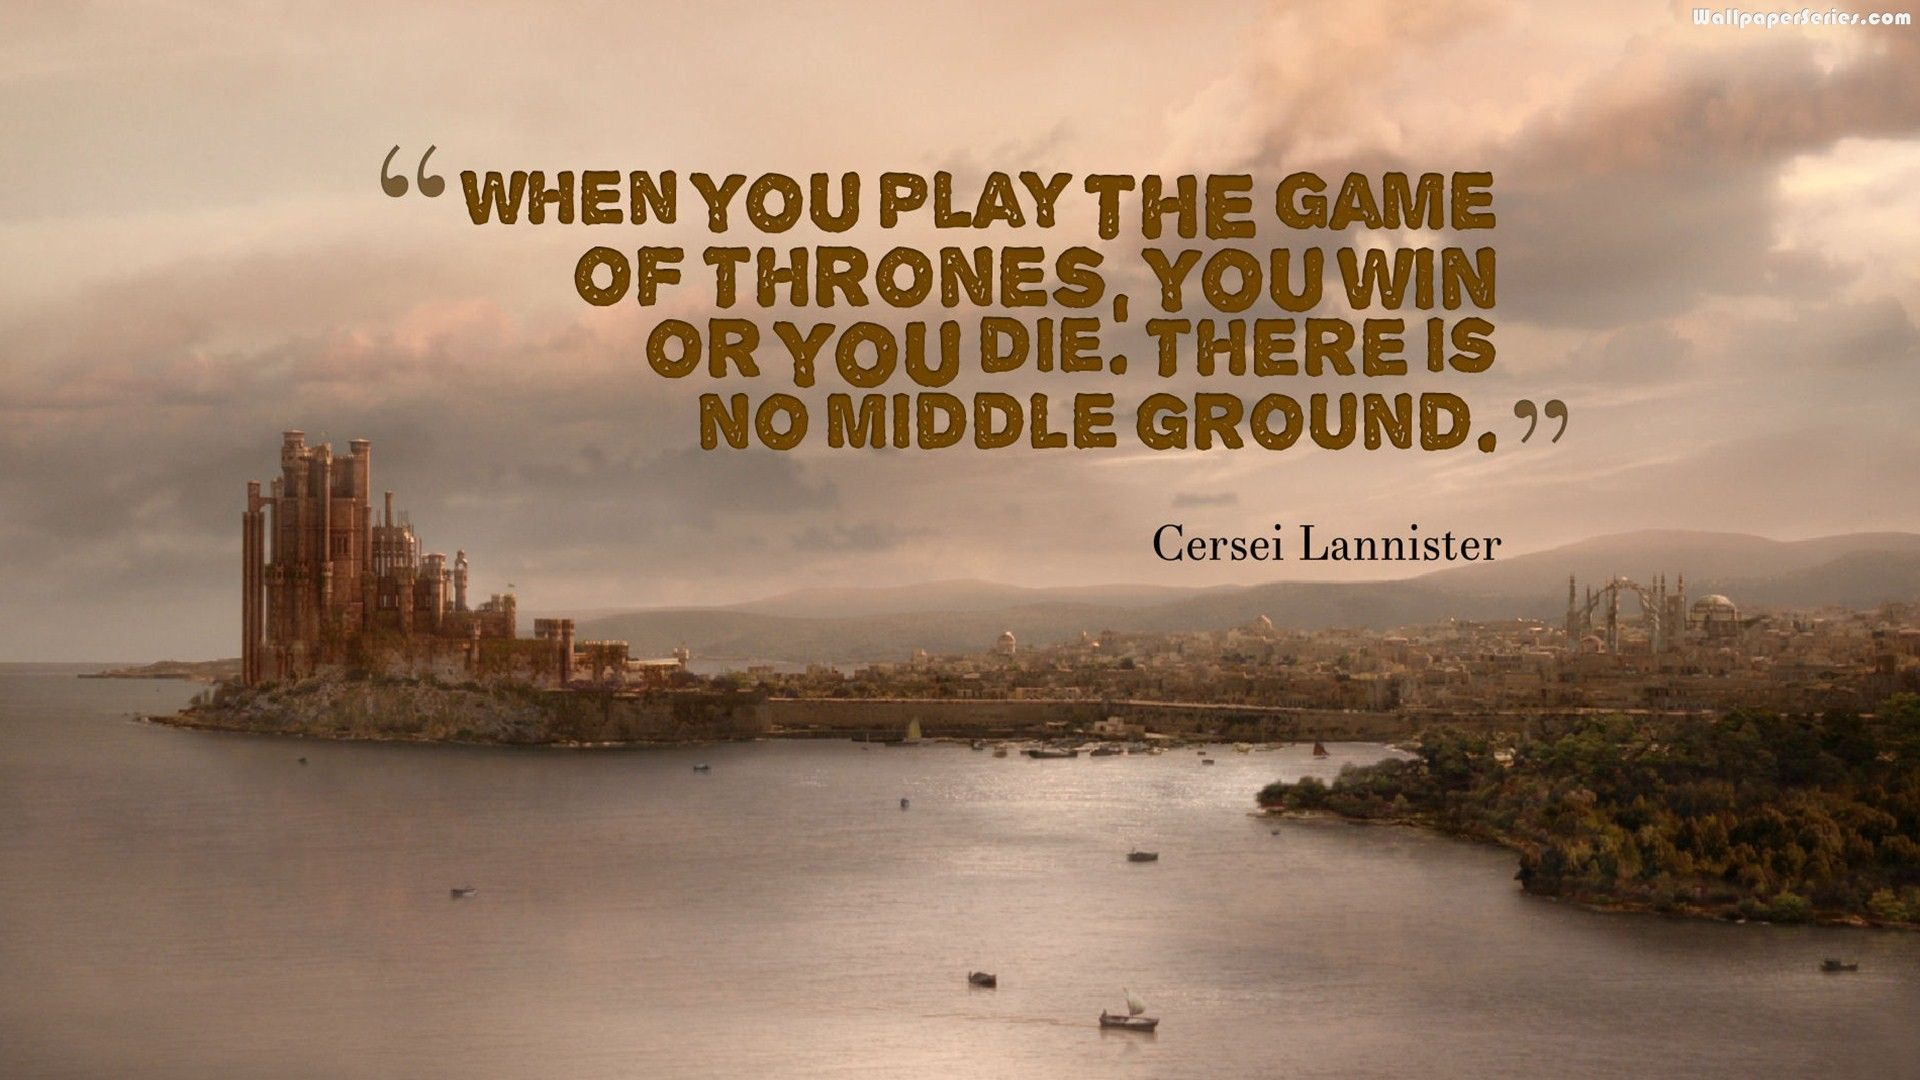 Game Of Thrones Quotes Wallpapers Hd Backgrounds, Image, - Game Of Thrones Quotes Wallpaper Hd - HD Wallpaper